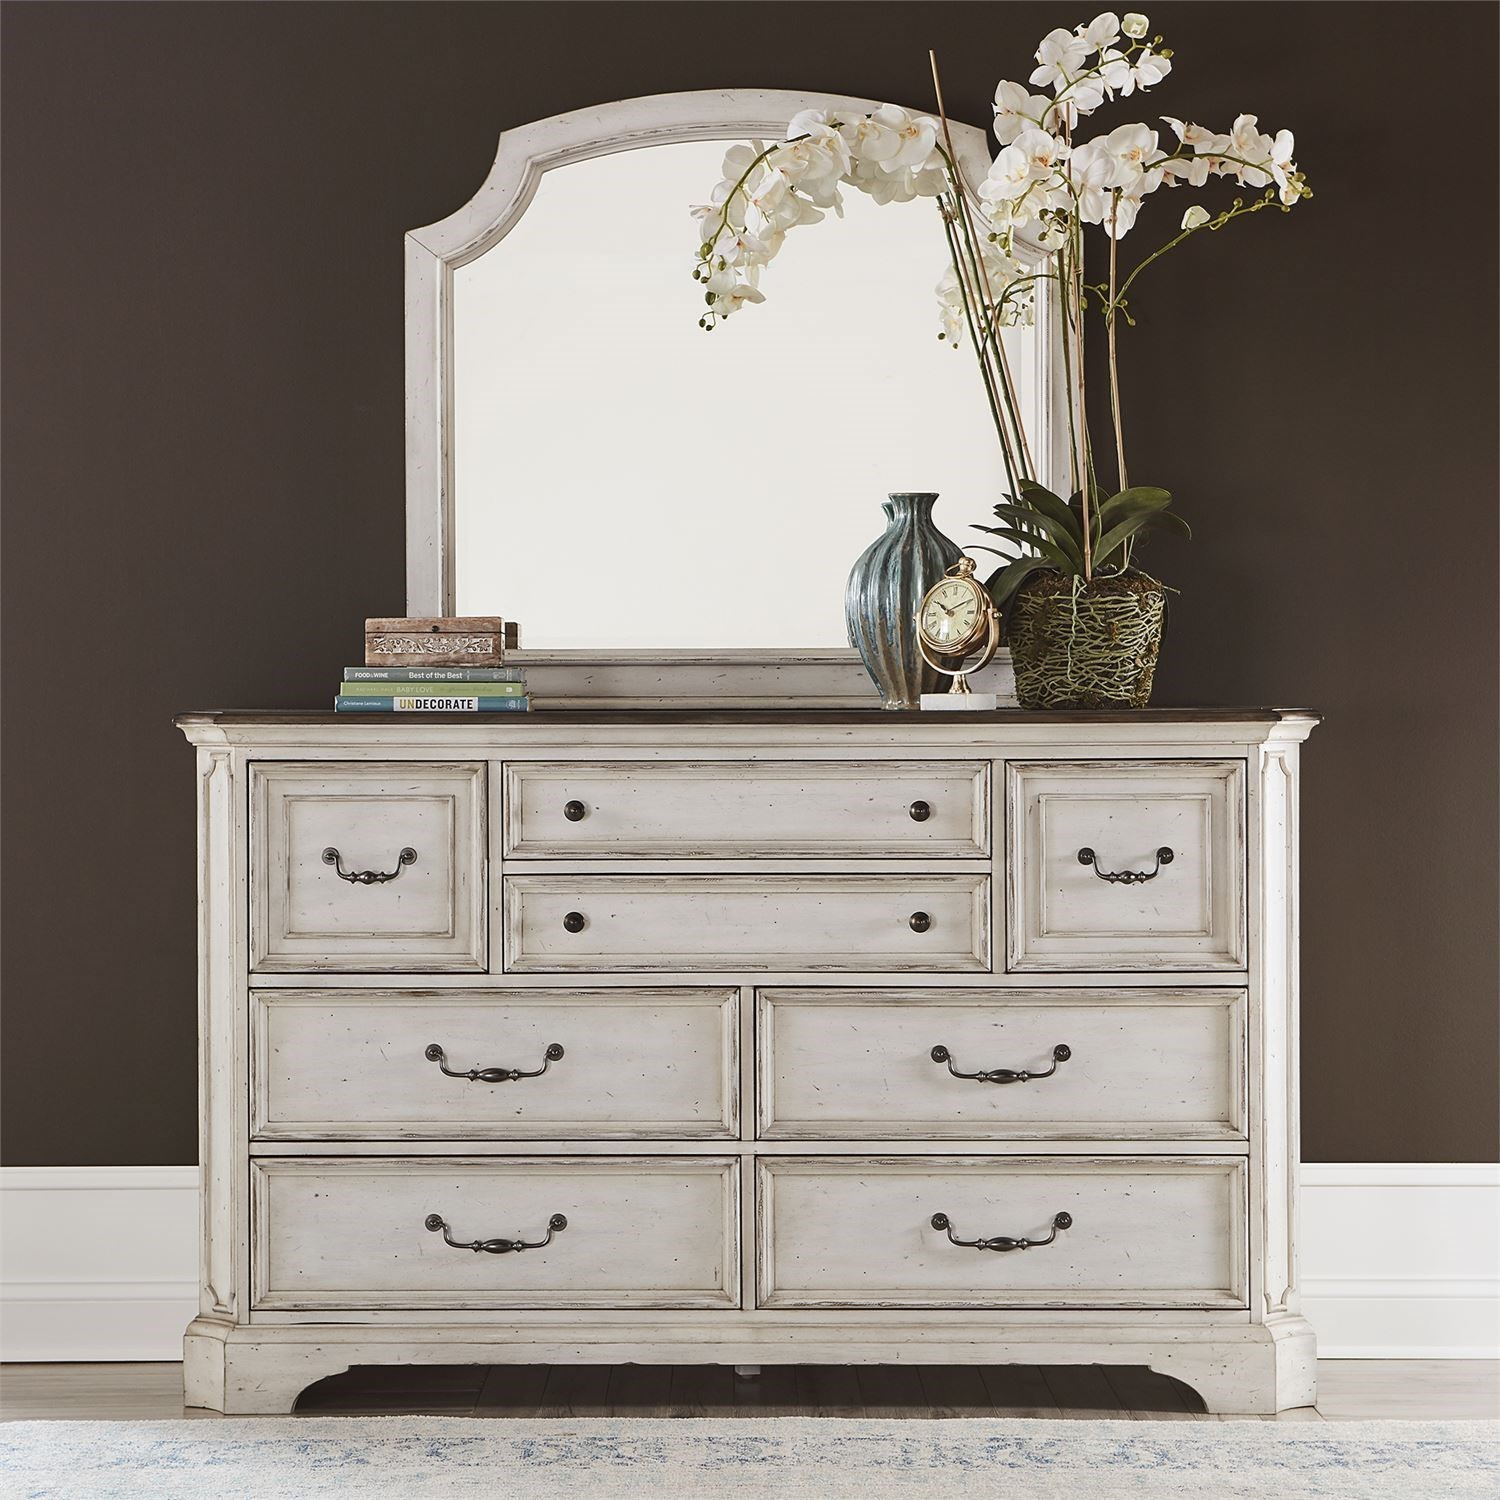 Abbey Road Dresser and Mirror by Libby at Walker's Furniture